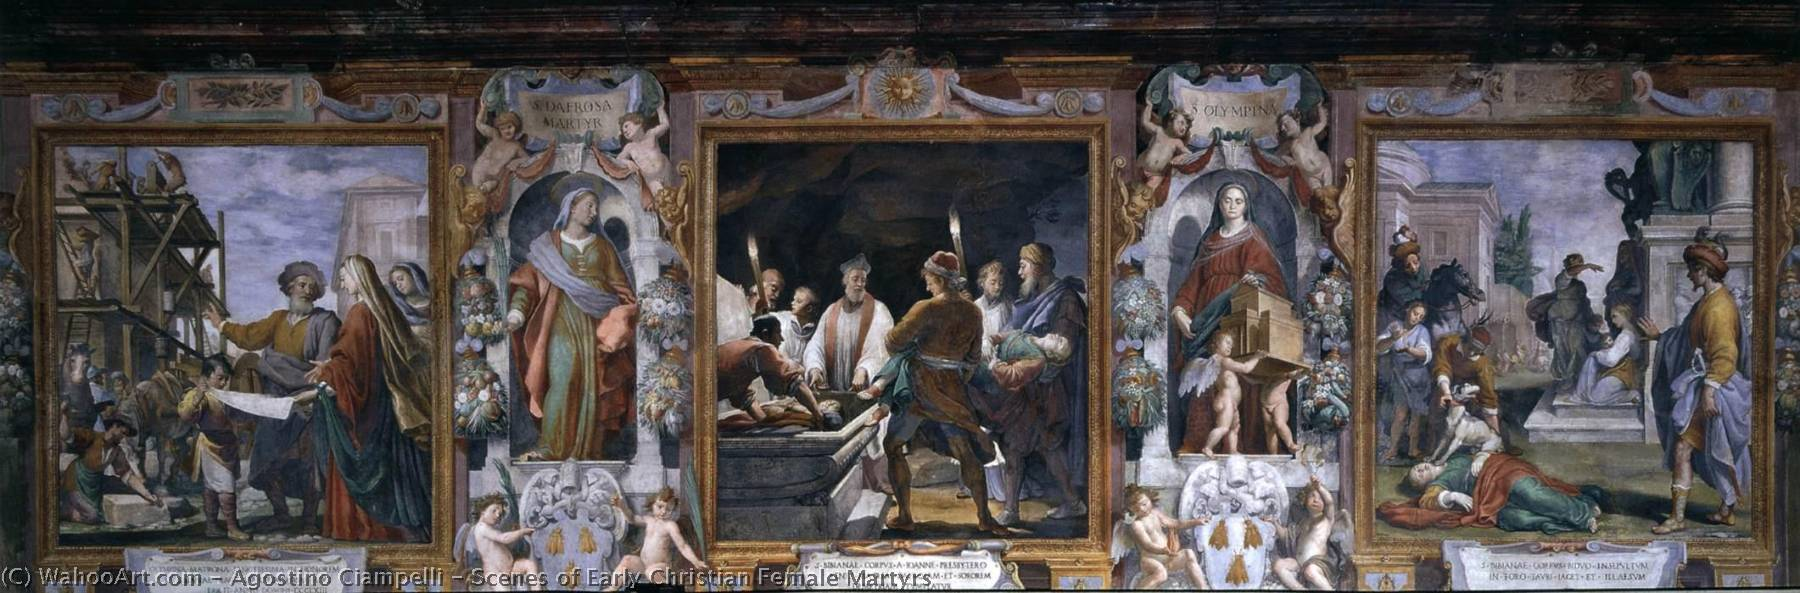 Order Art Reproductions | Scenes of Early Christian Female Martyrs, 1622 by Agostino Ciampelli (1578-1630) | WahooArt.com